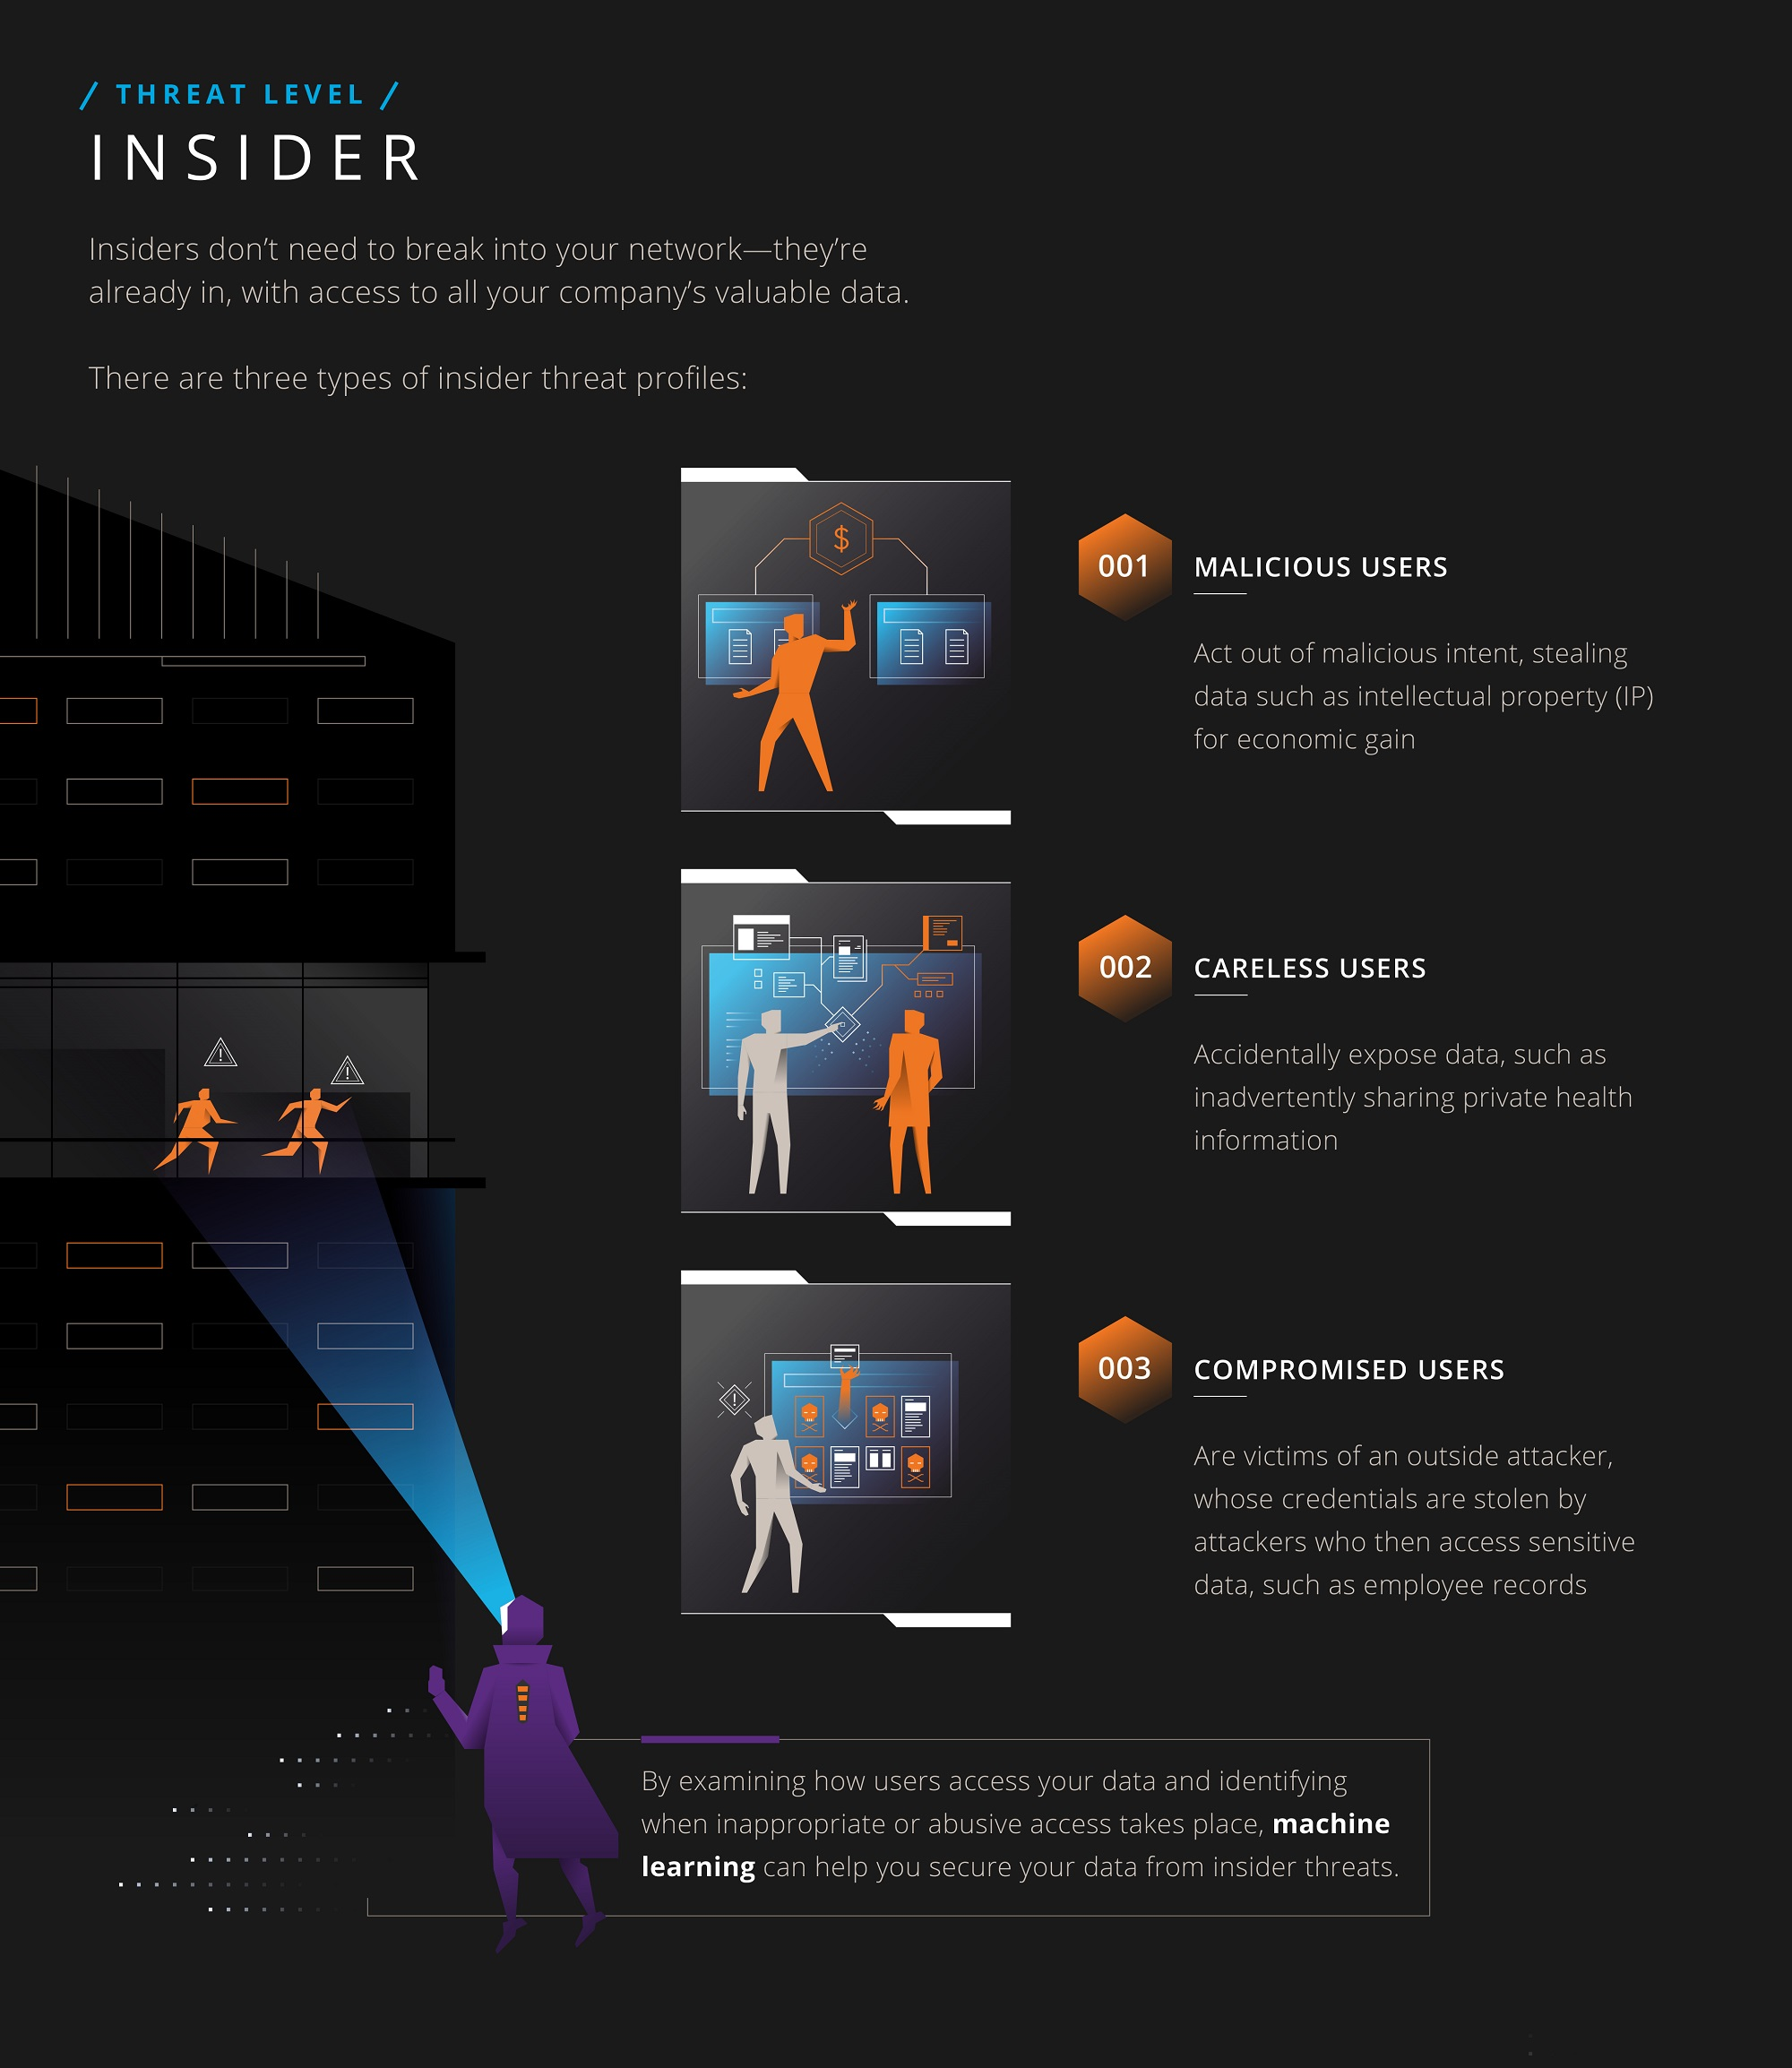 Thwart Insider Threats with Machine Learning [Infographic]   Imperva